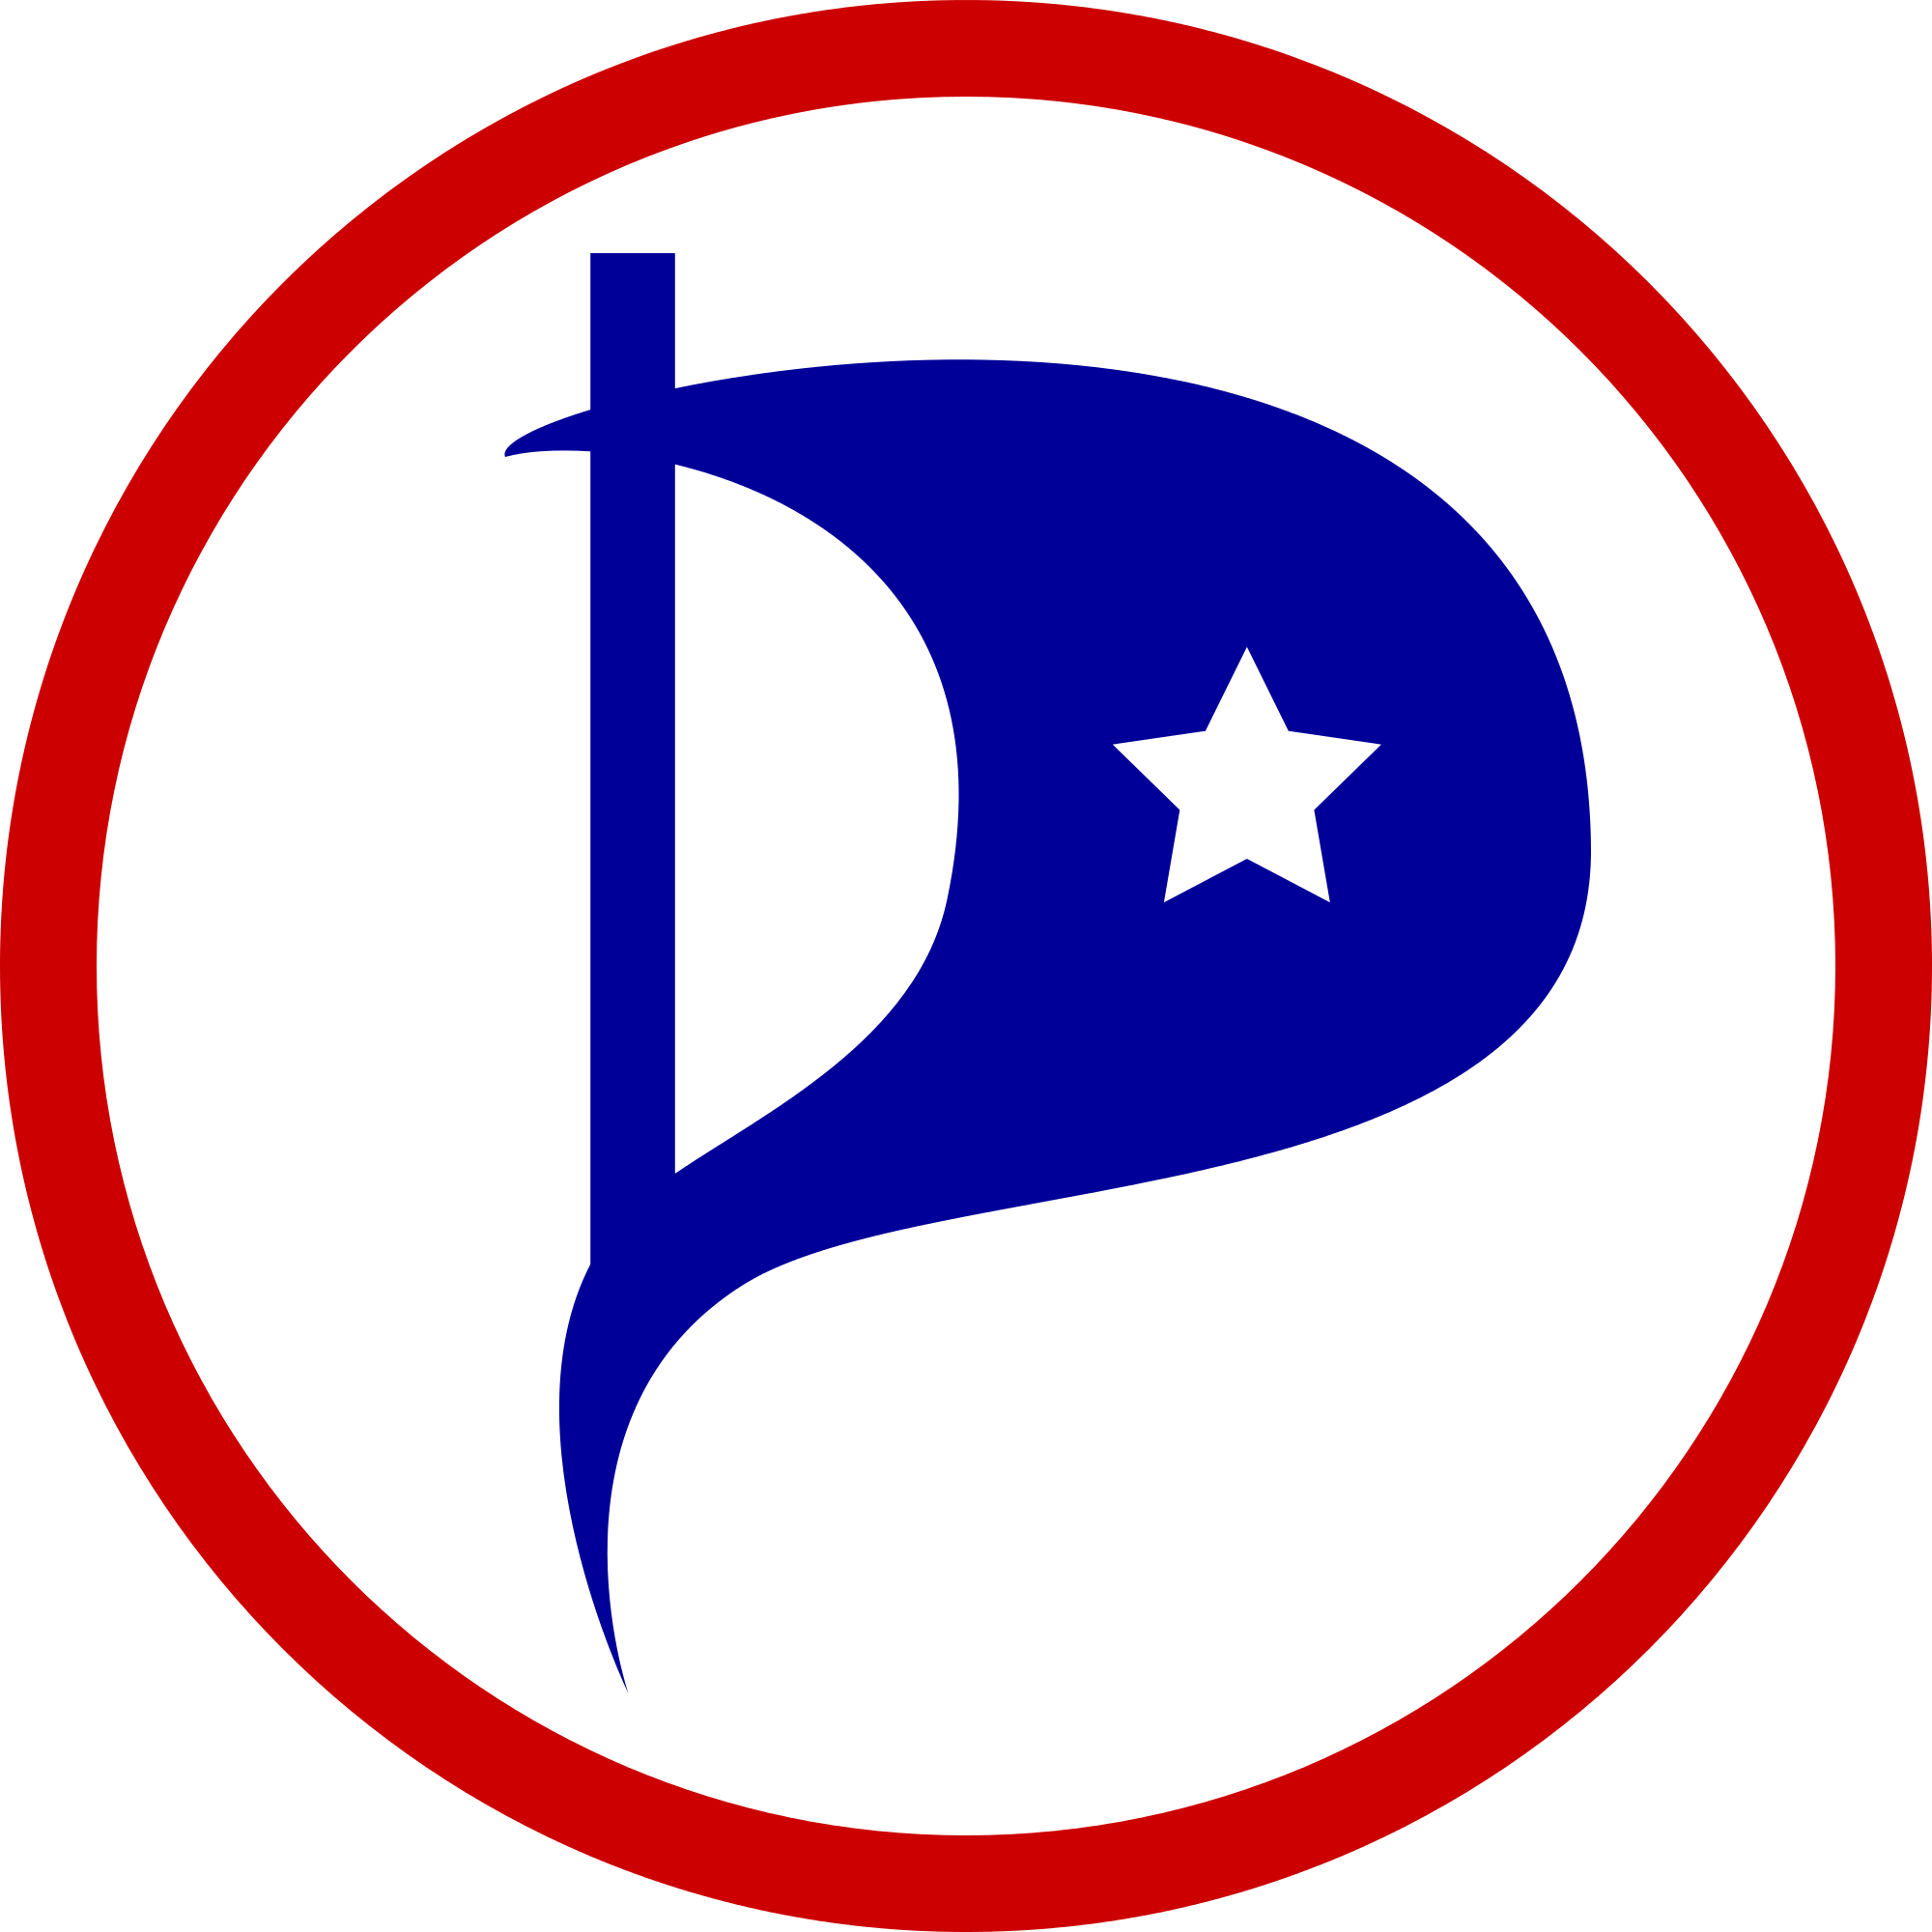 banner transparent Usa svg party. File pirate logo wikimedia